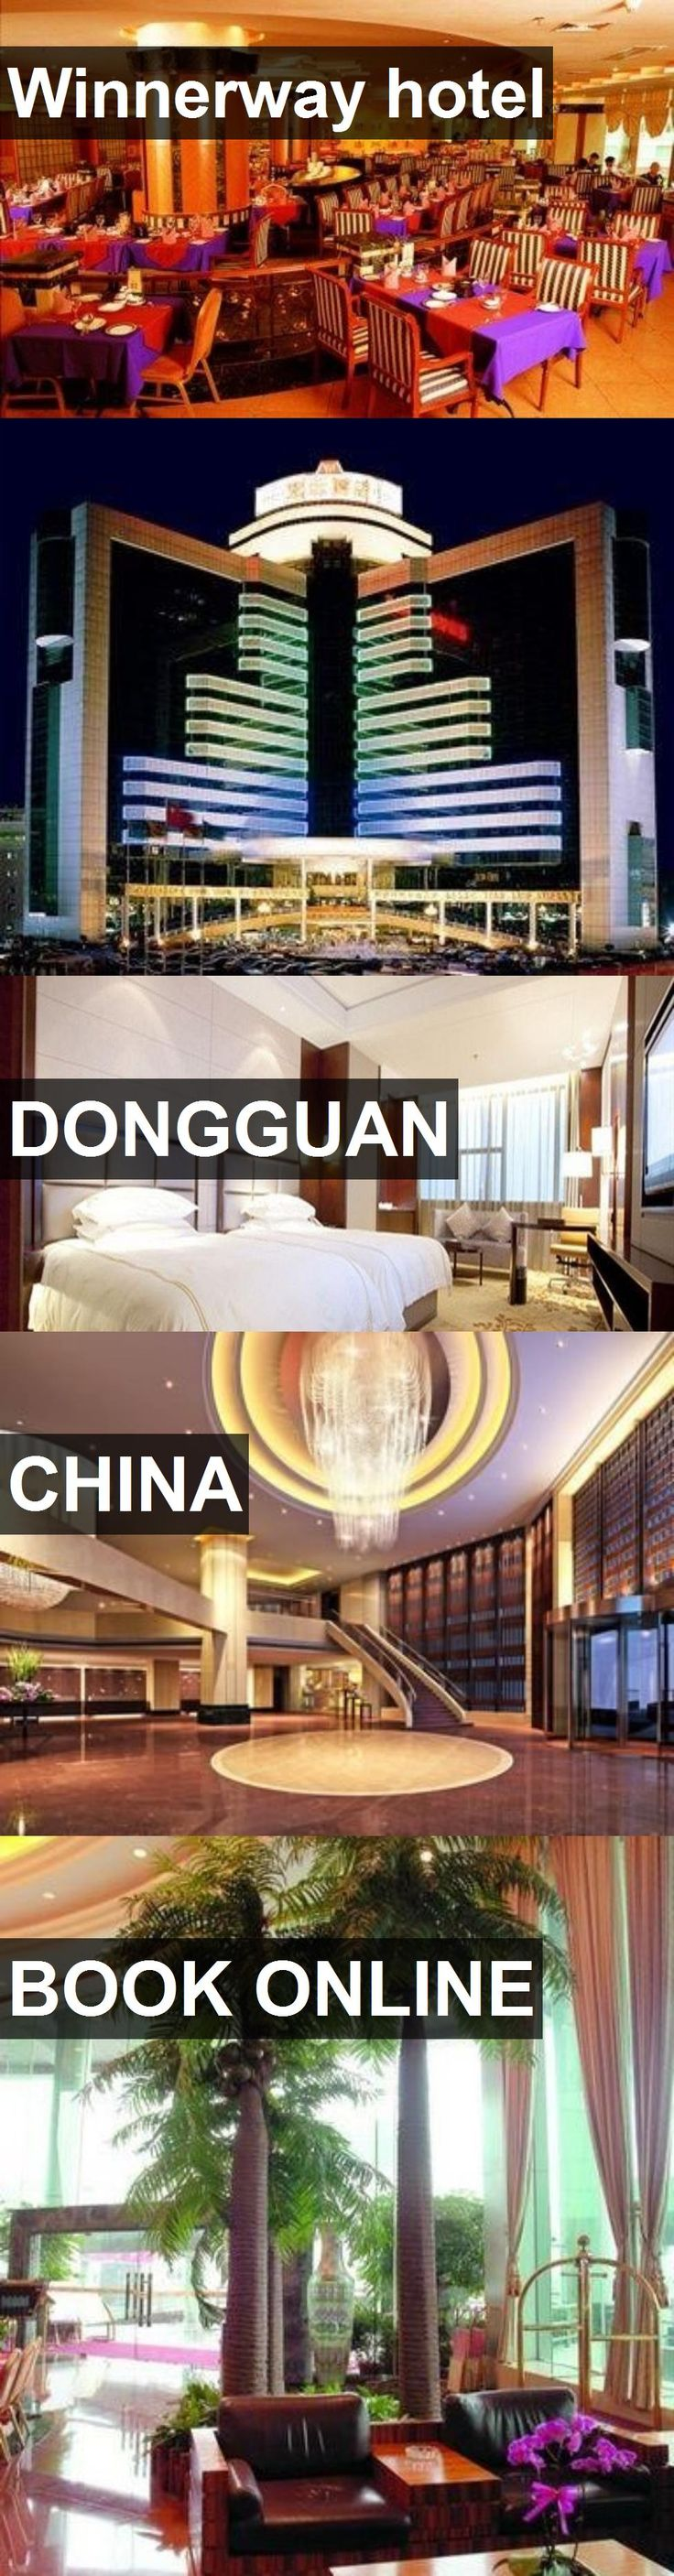 Winnerway hotel in Dongguan, China. For more information, photos, reviews and best prices please follow the link. #China #Dongguan #travel #vacation #hotel